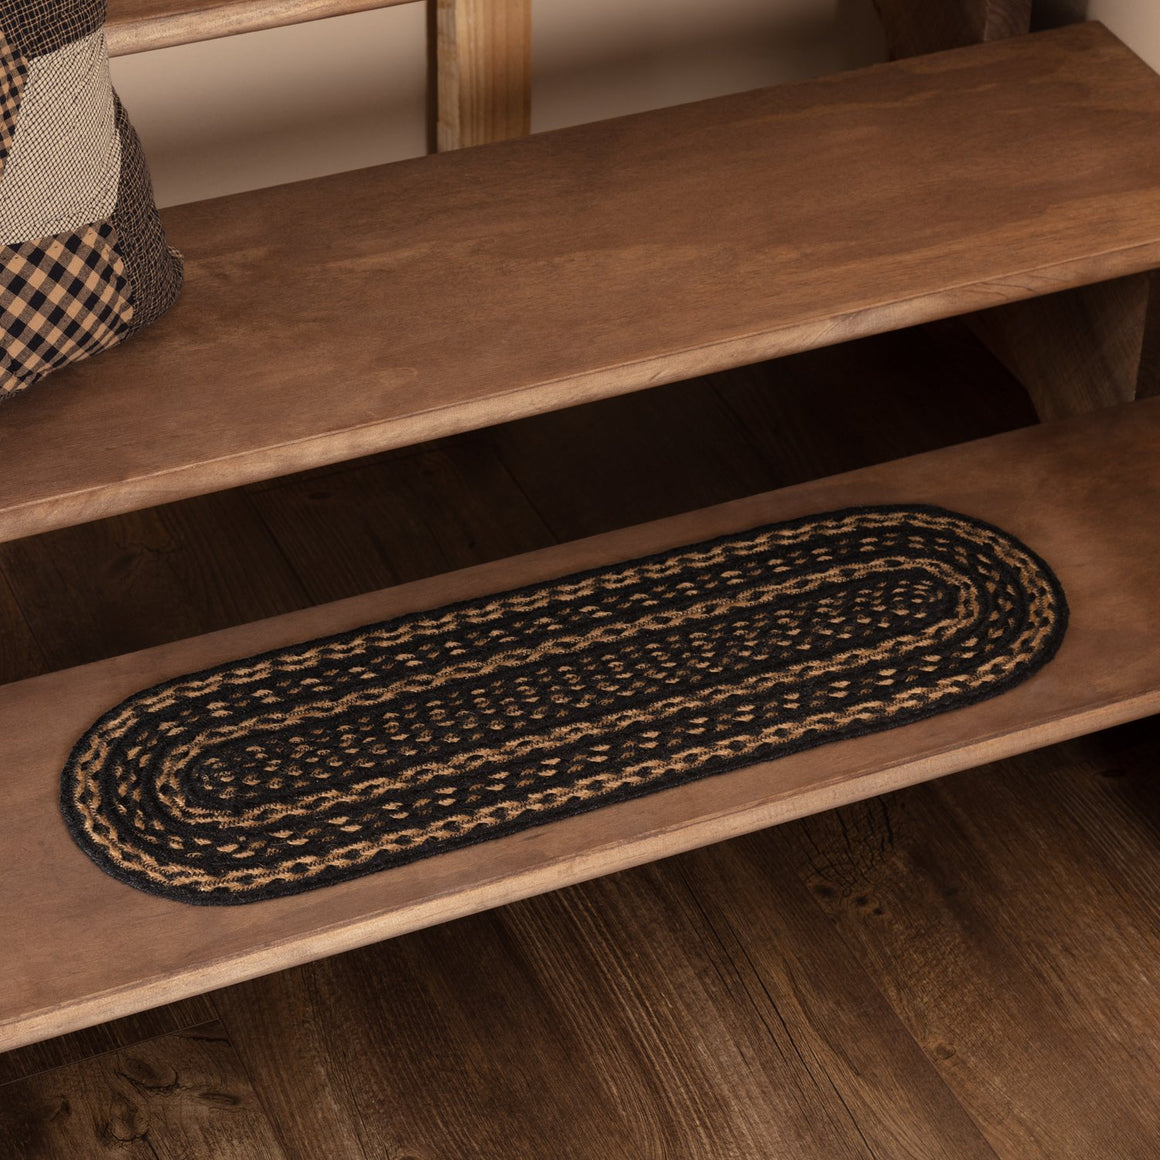 Farmhouse Jute Stair Tread Oval Latex 8.5x27